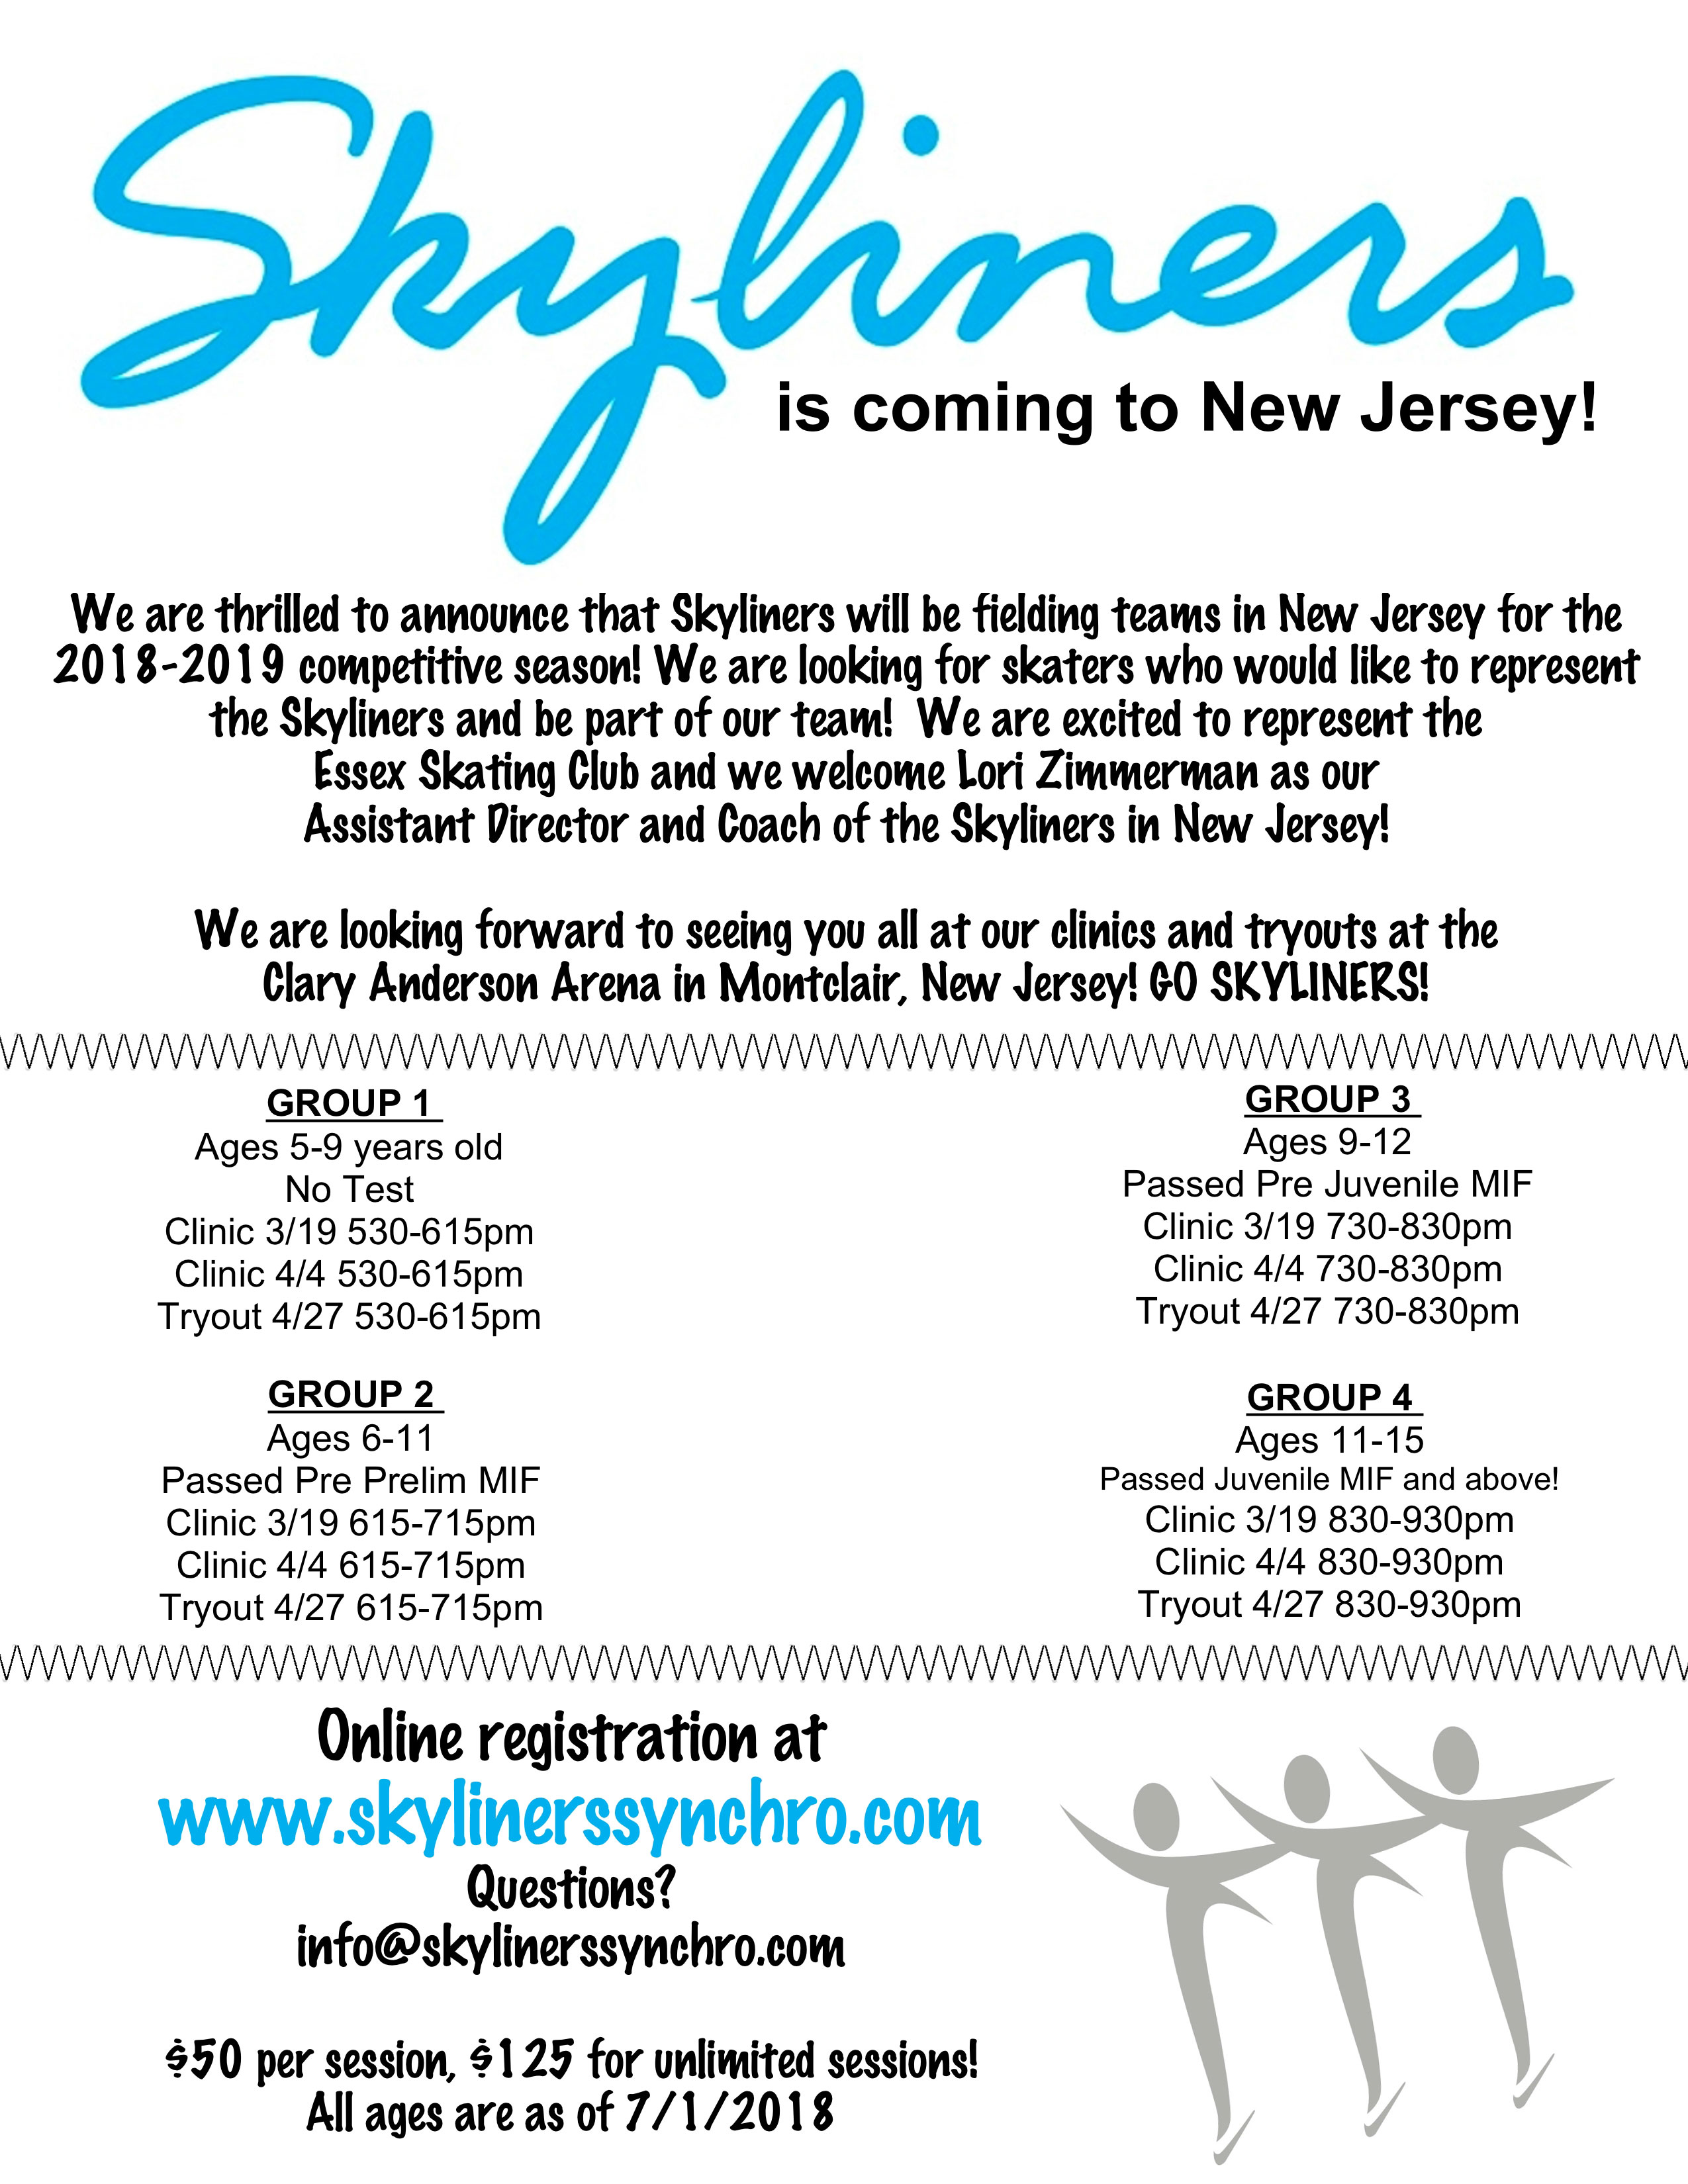 Skyliners in New Jersey